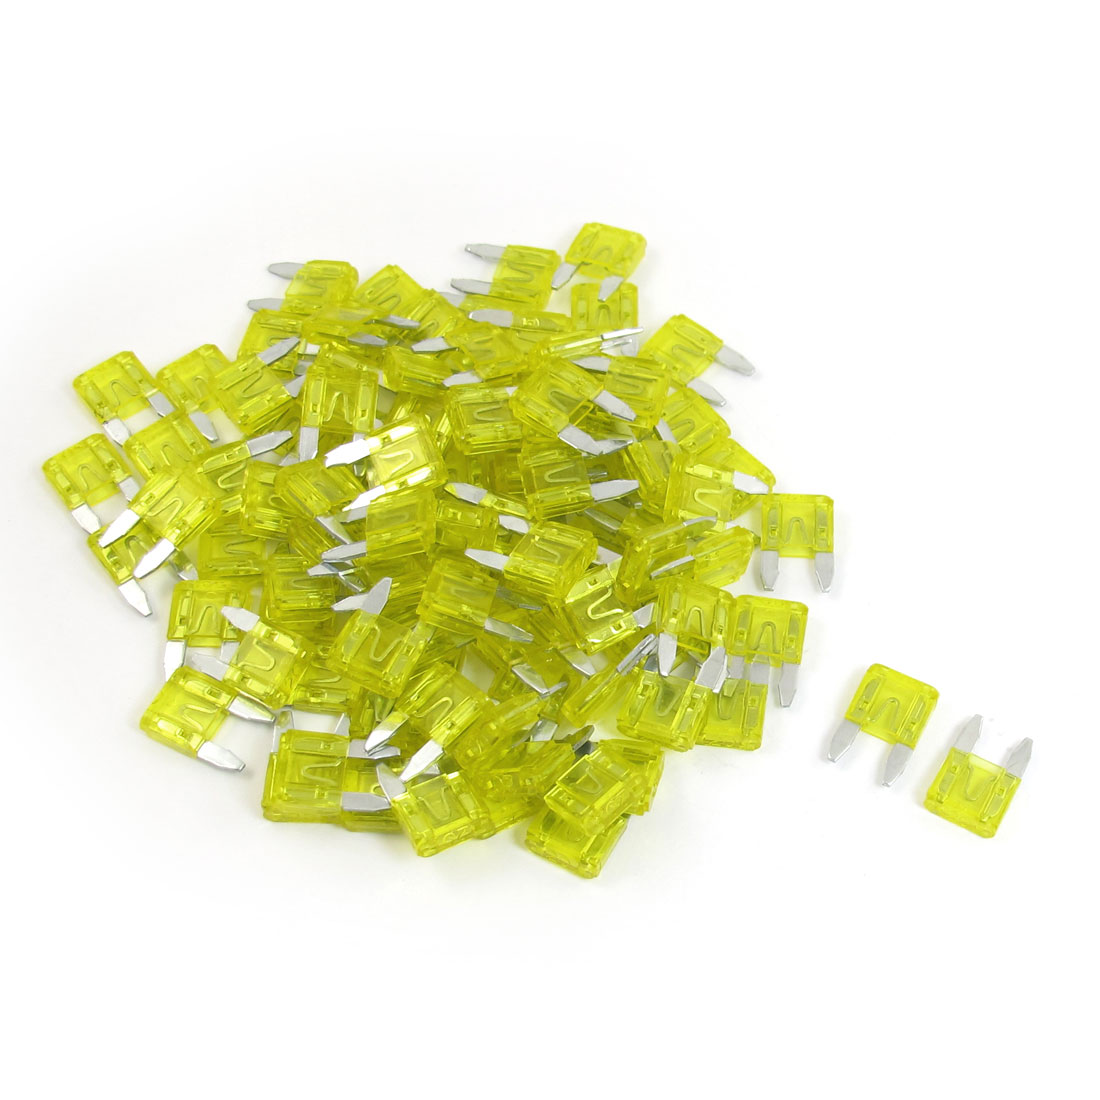 100 Pcs Plastic Housing 20A Vehicle Car Auto Blade Fuses Yellow